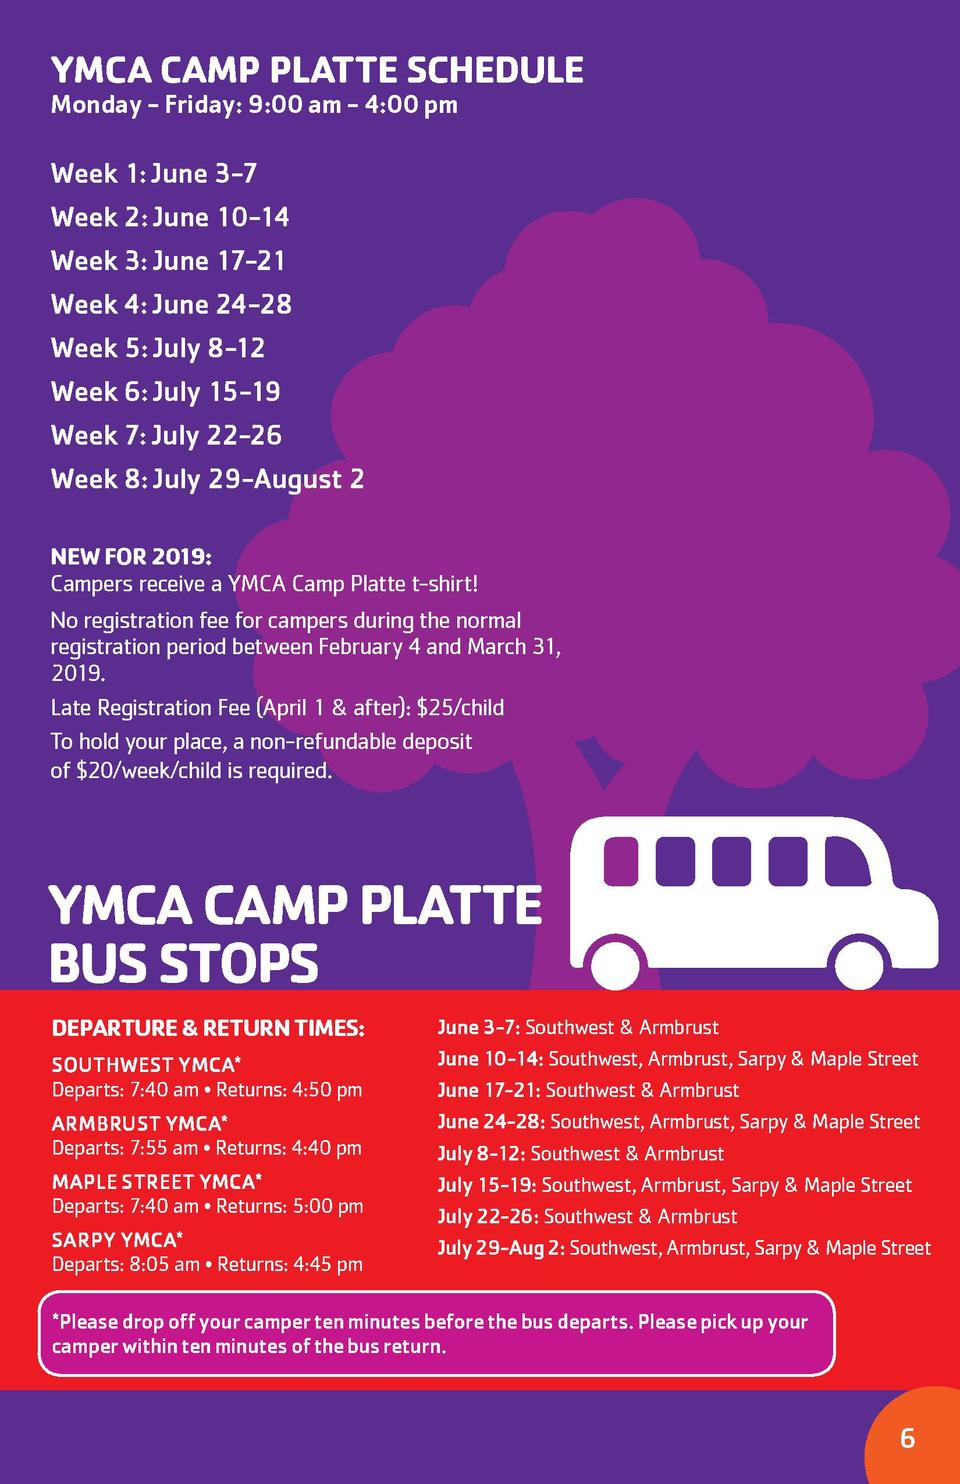 YMCA CAMP PLATTE SCHEDULE Monday - Friday  9 00 am - 4 00 pm  Week 1  June 3-7 Week 2  June 10-14 Week 3  June 17-21 Week ...